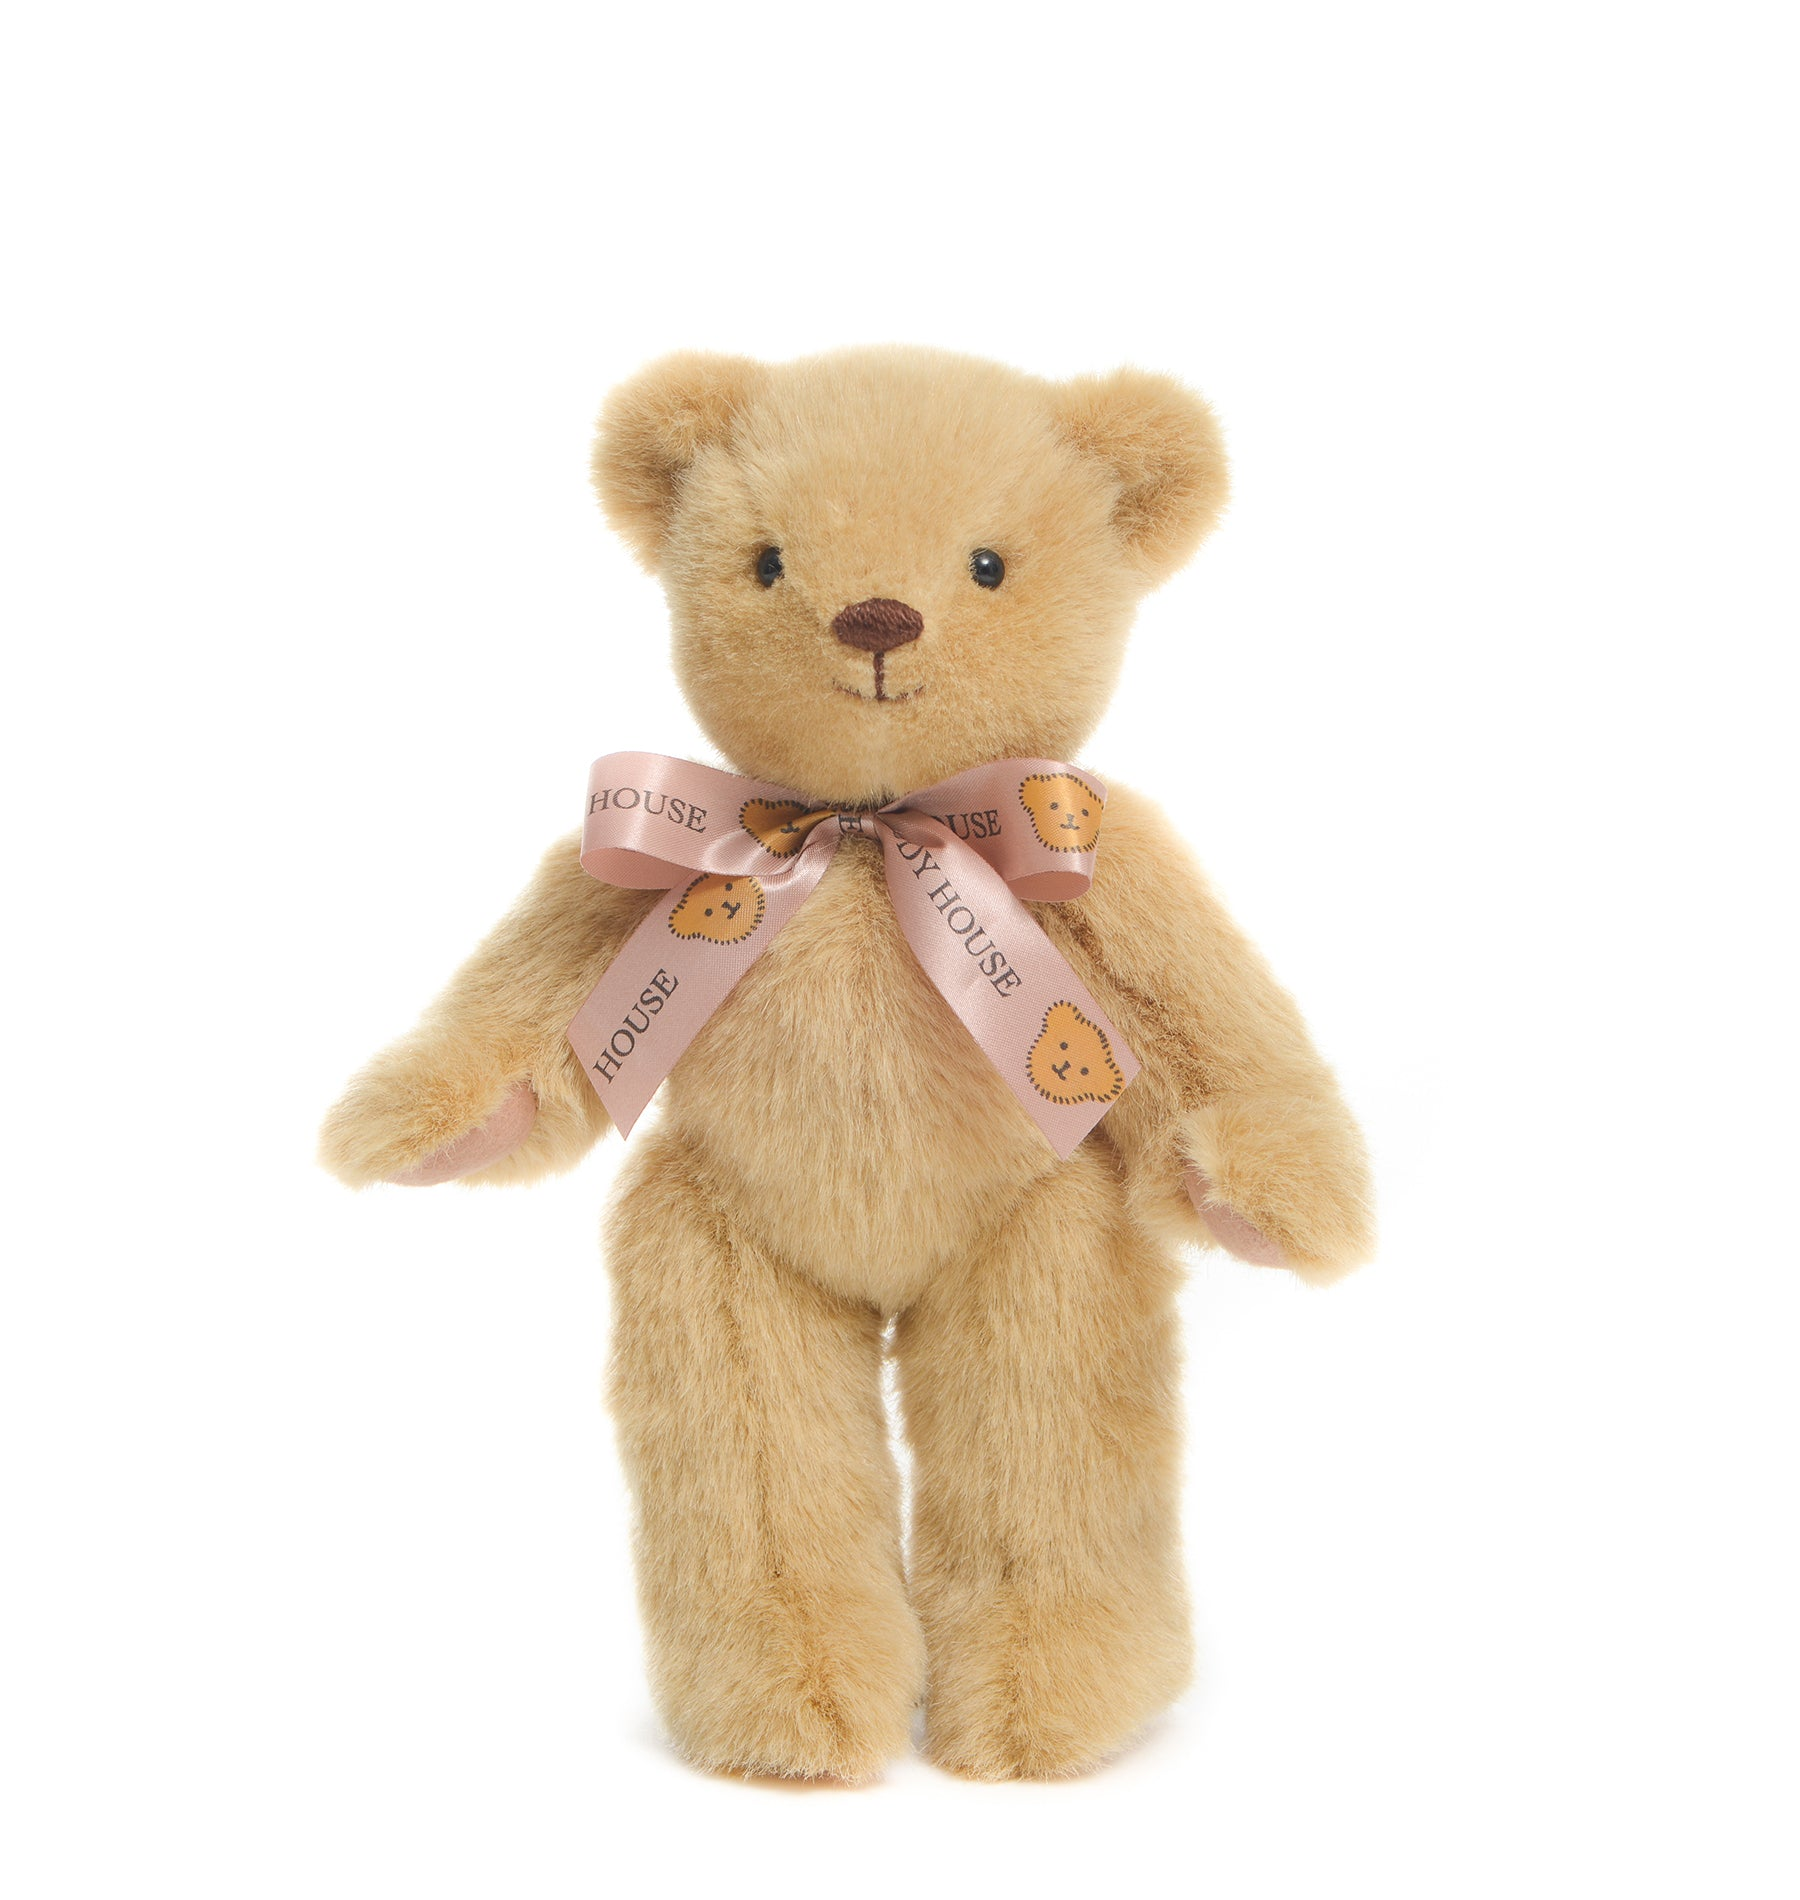 TEDDY HOUSE BONEKA TEDDY BEAR ROSE BEAR 10 INCH